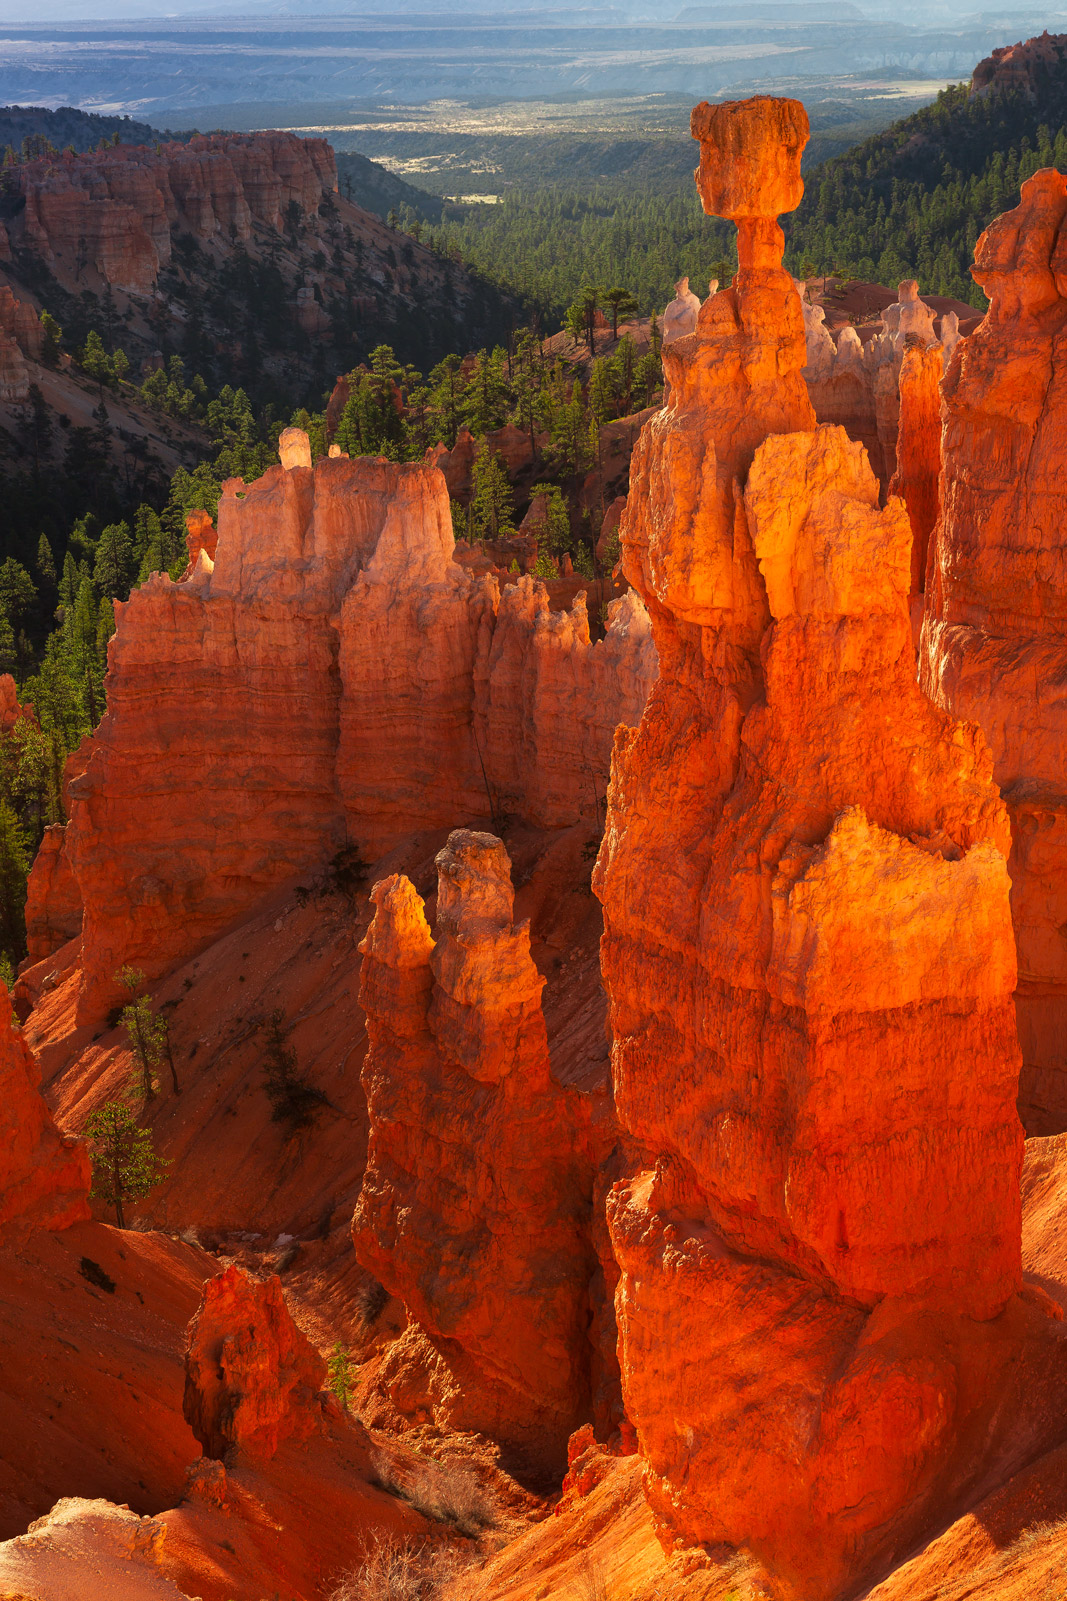 A Limited Edition, Fine Art photograph of Thor's Hammer at sunrise at Bryce Canyon National Park looking like it's almost glowing...